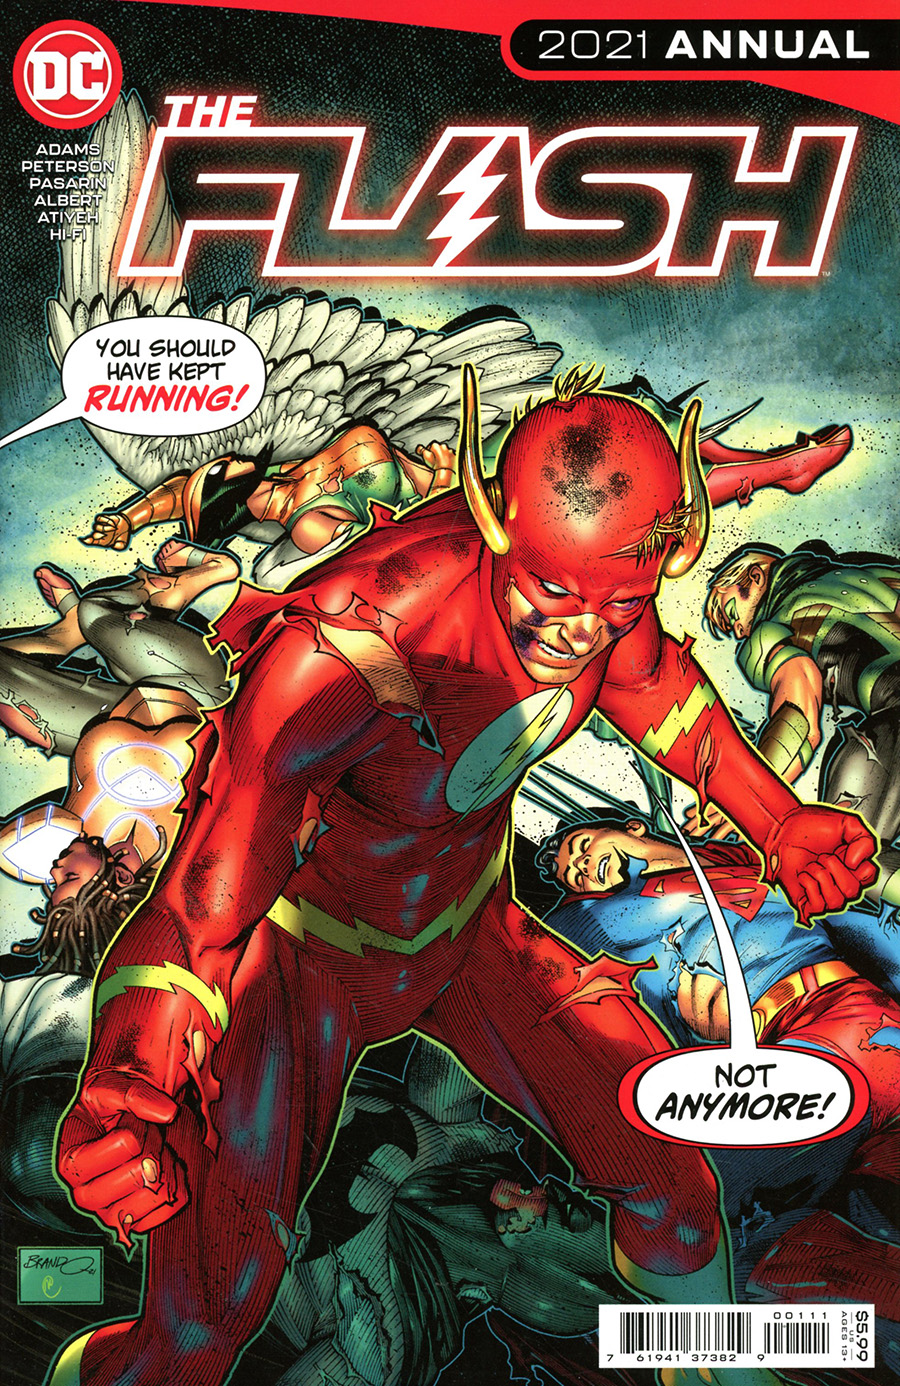 Flash Vol 5 Annual 2021 #1 Cover A Regular Brandon Peterson Cover